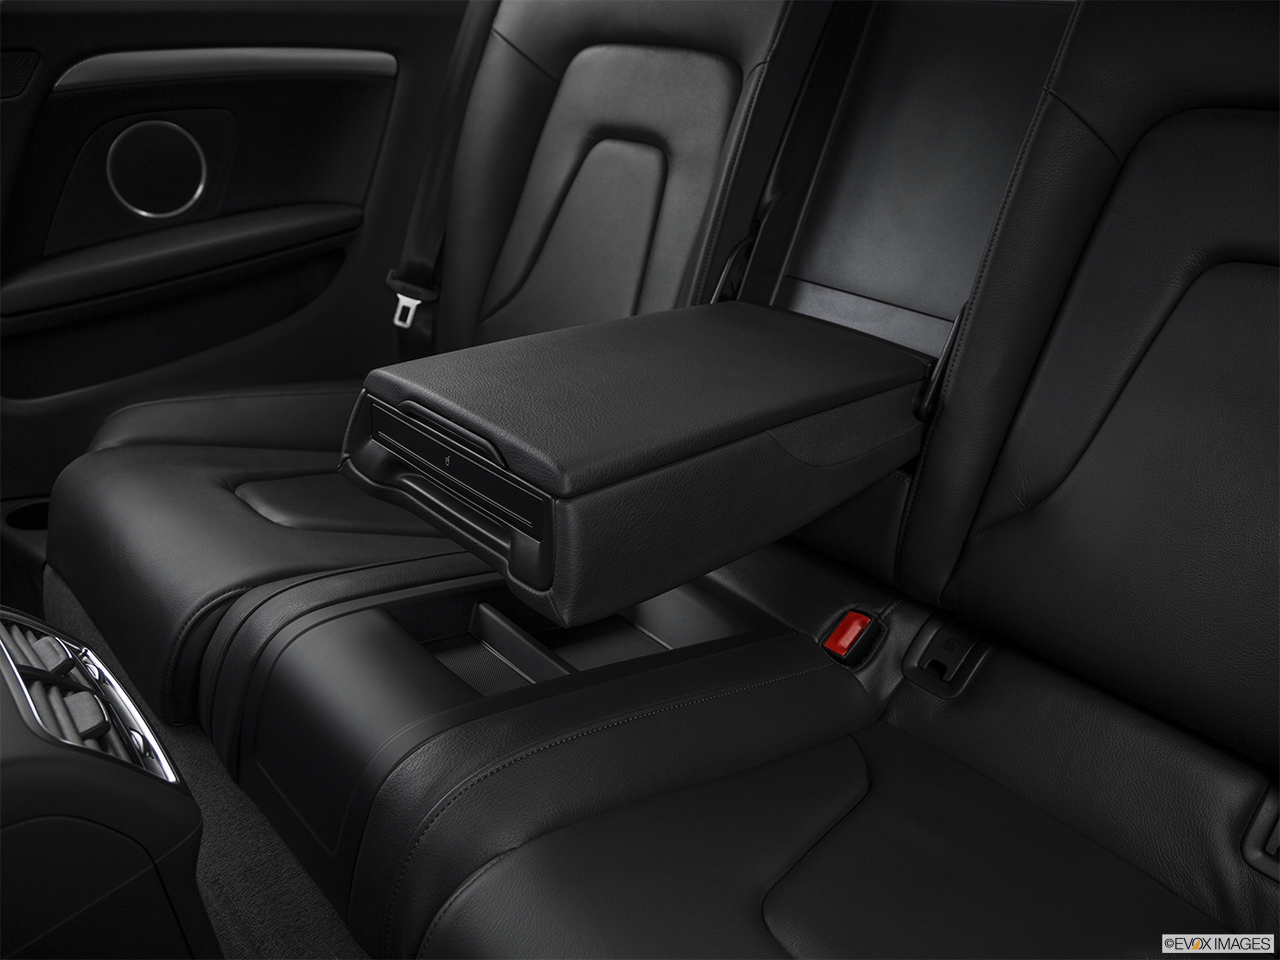 2017 Audi A5 Sport 2.0 TFSI Rear center console with closed lid from driver's side looking down.